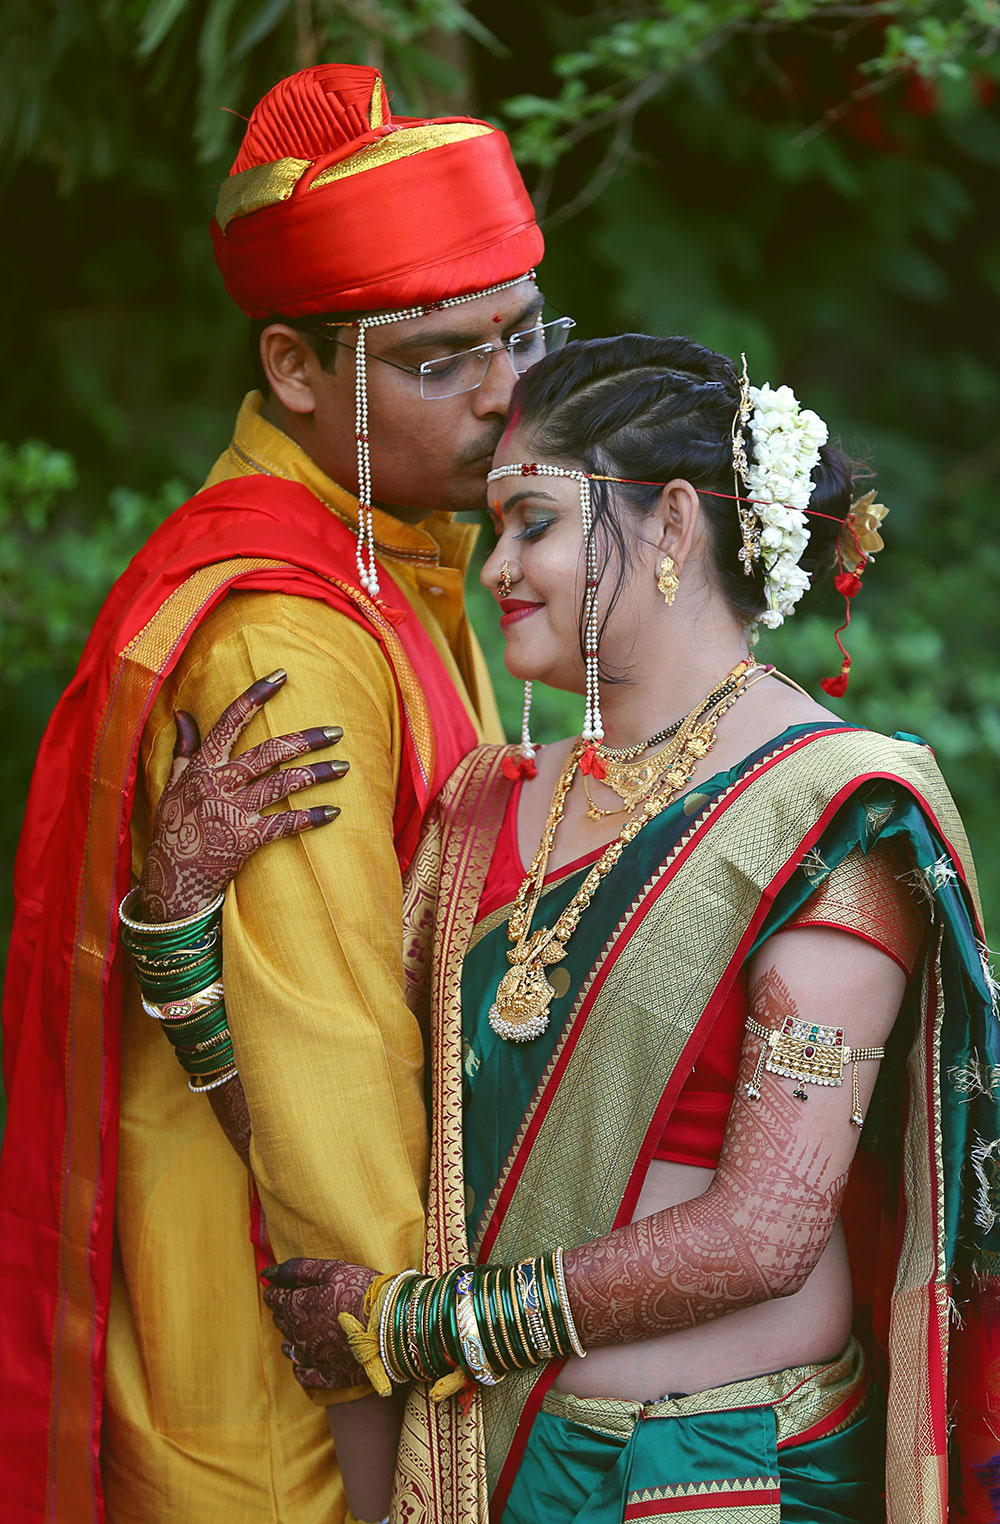 wedding-shoot@5082000$img-6.jpg